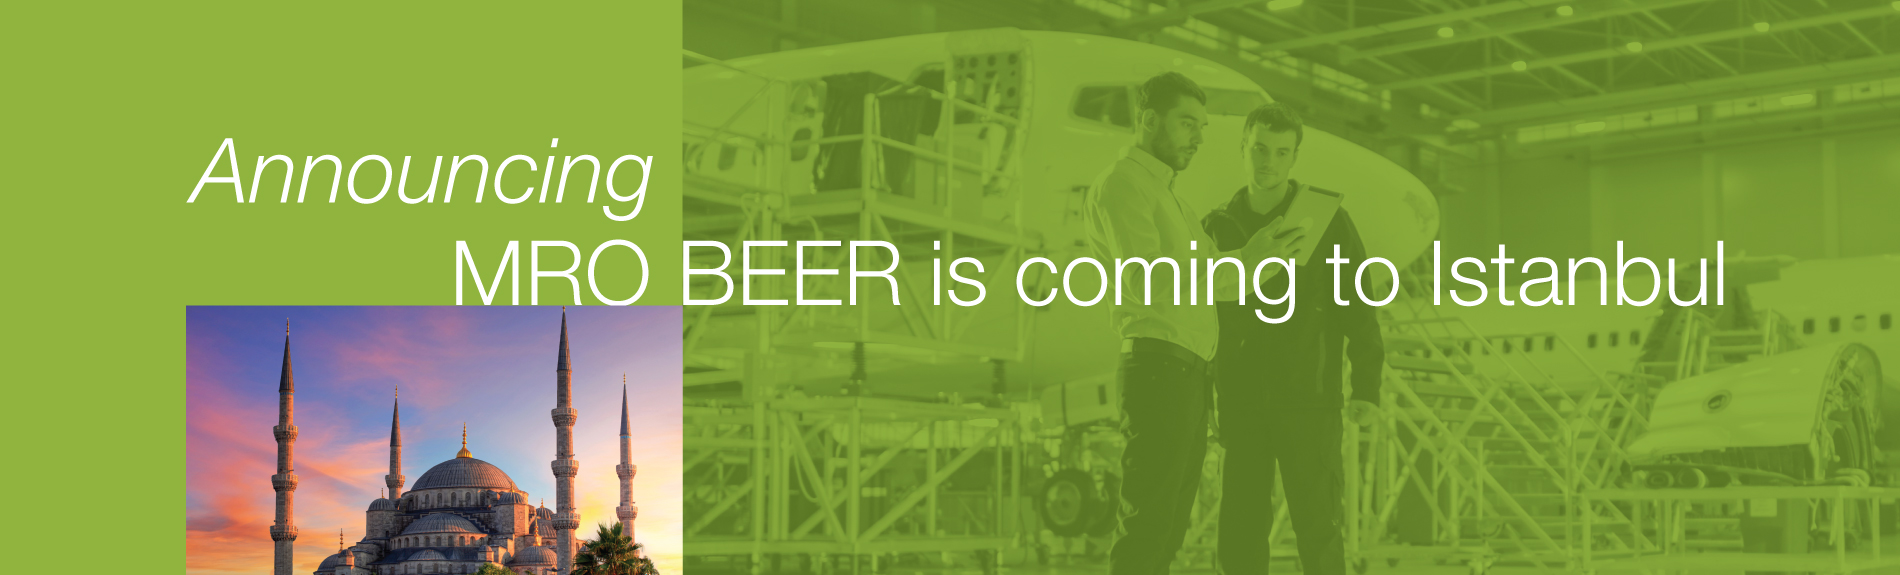 MRO BEER will be held in Istanbul